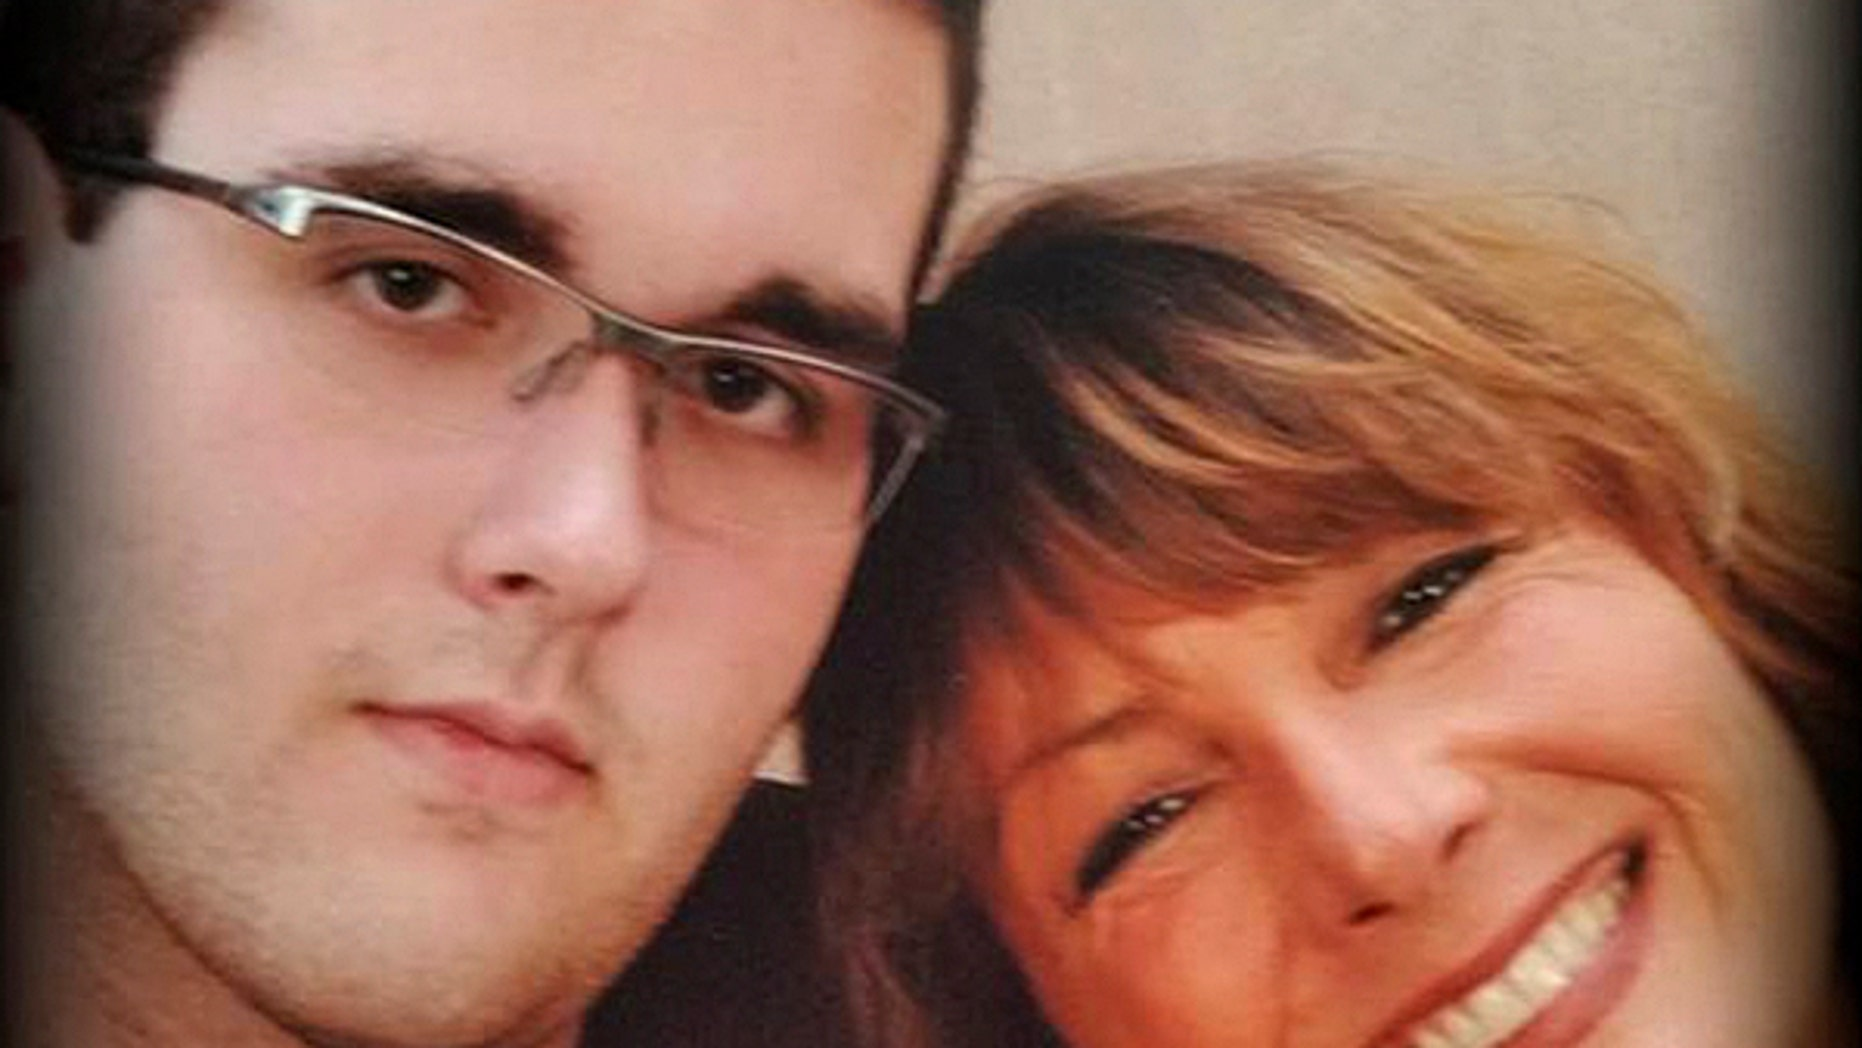 Charlottesville suspect James Fields Jr. and his mother Samantha Bloom